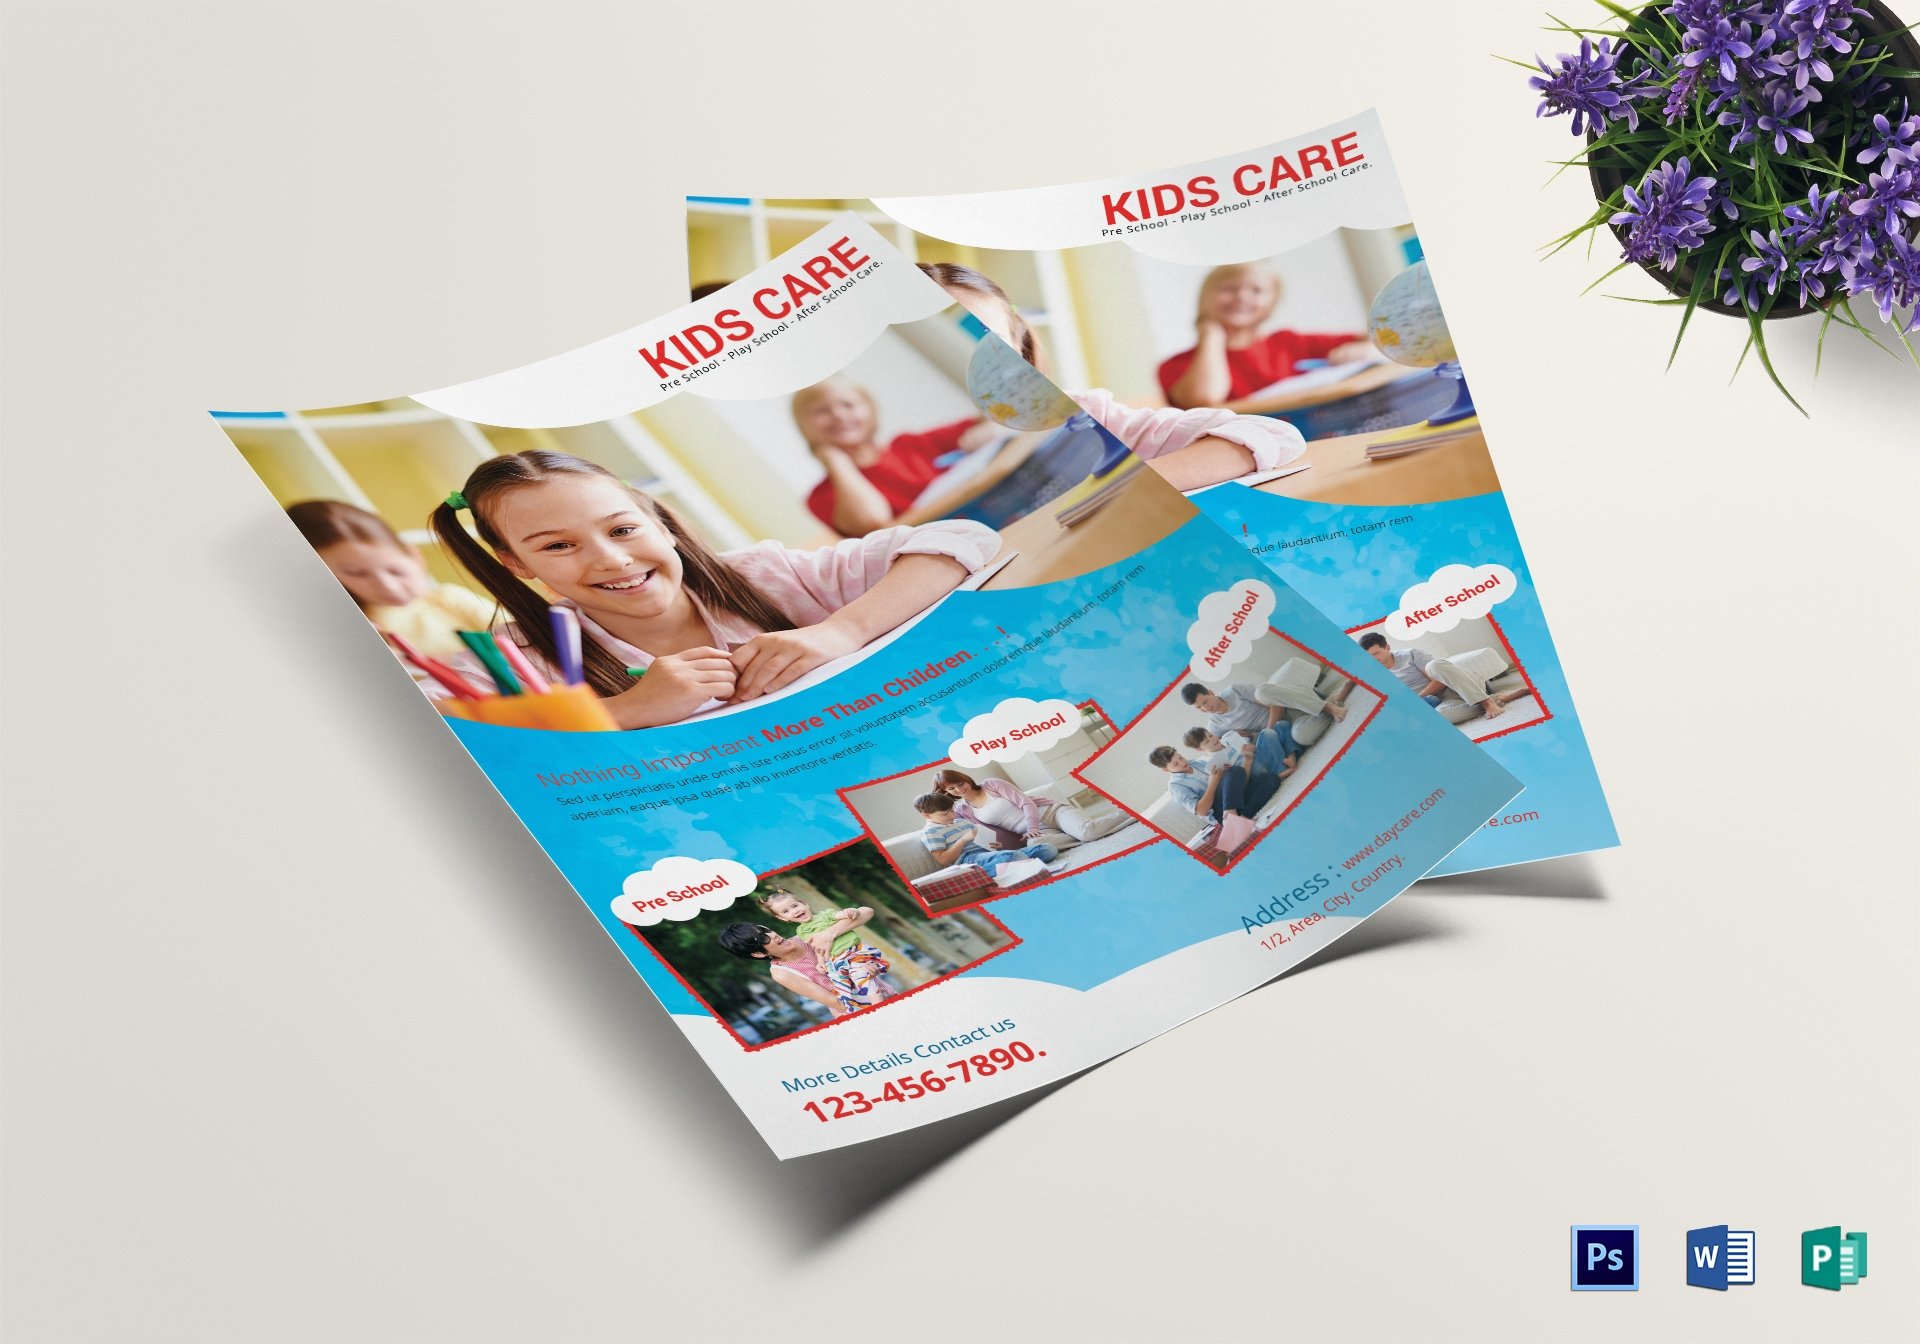 scholar kids care centre flyer template